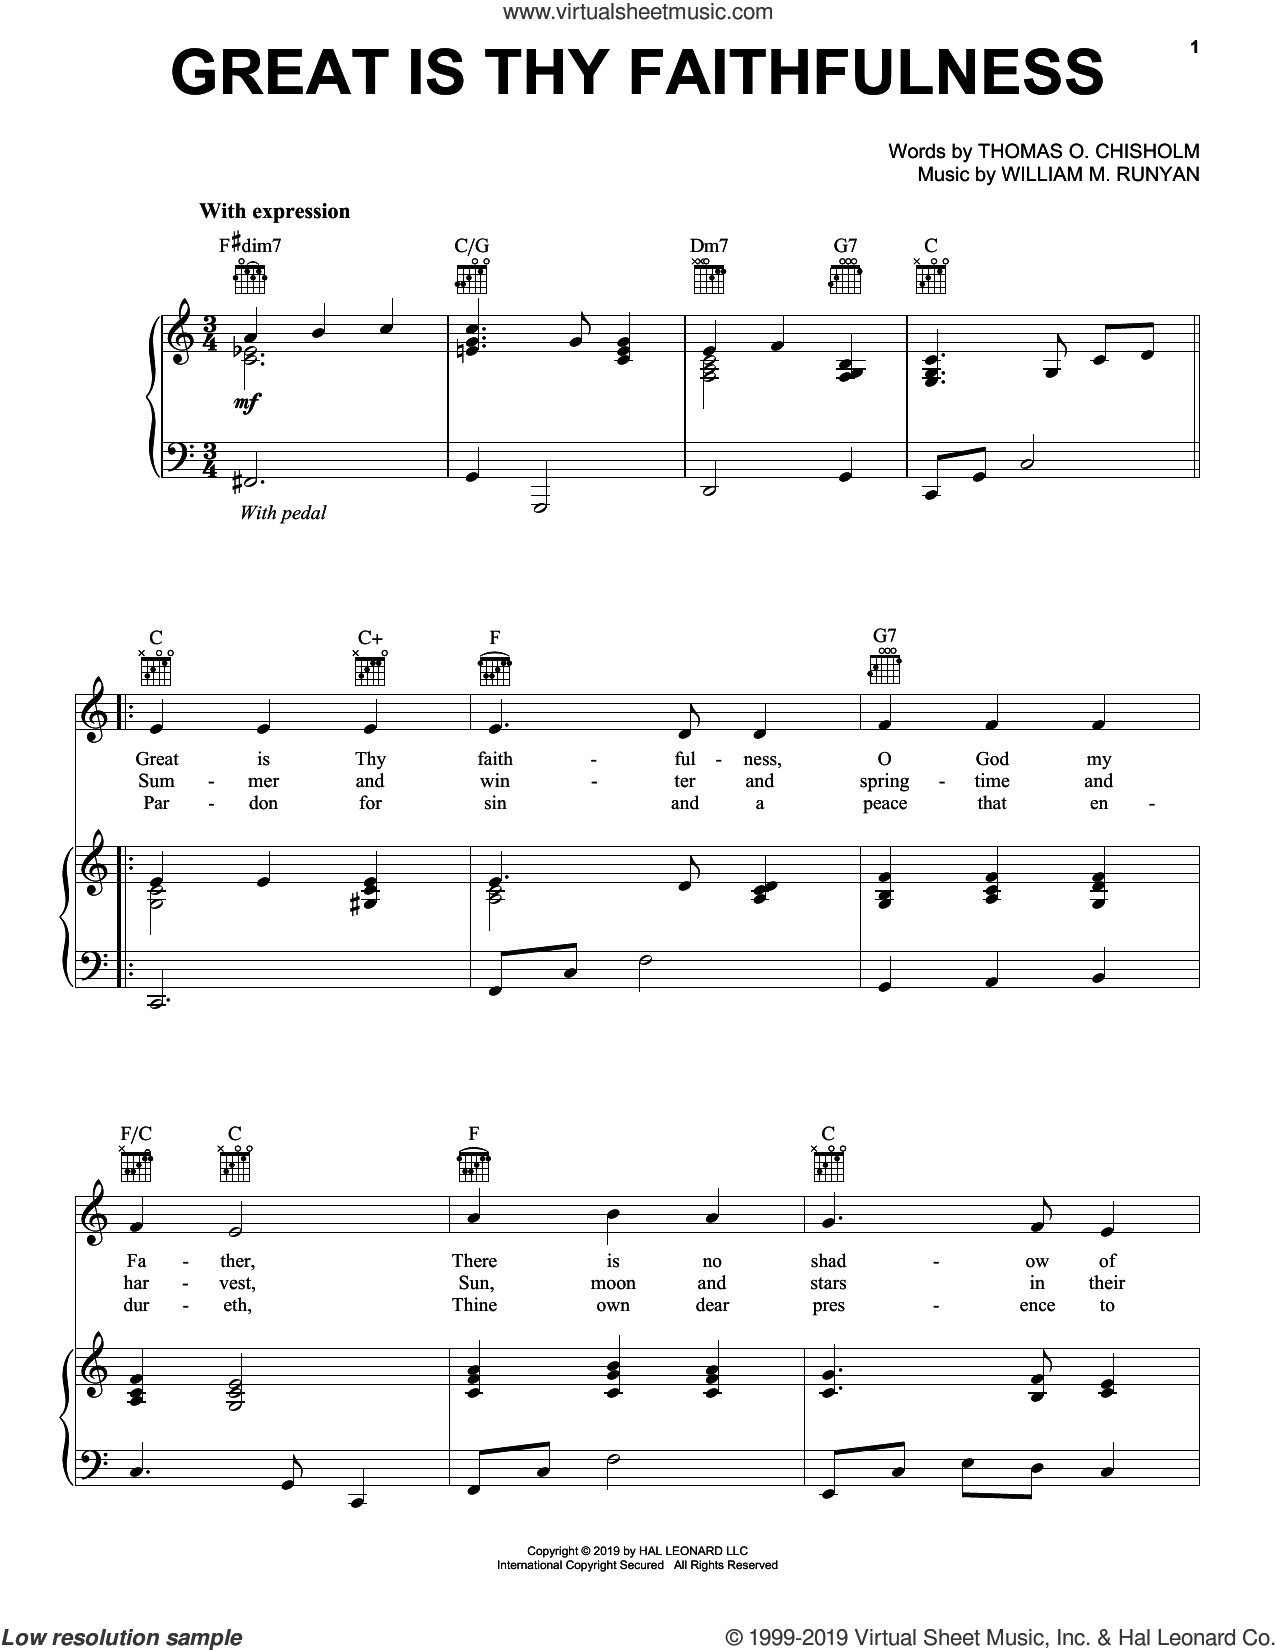 Great Is Thy Faithfulness sheet music for voice, piano or guitar by Thomas O. Chisholm and William M. Runyan, intermediate skill level